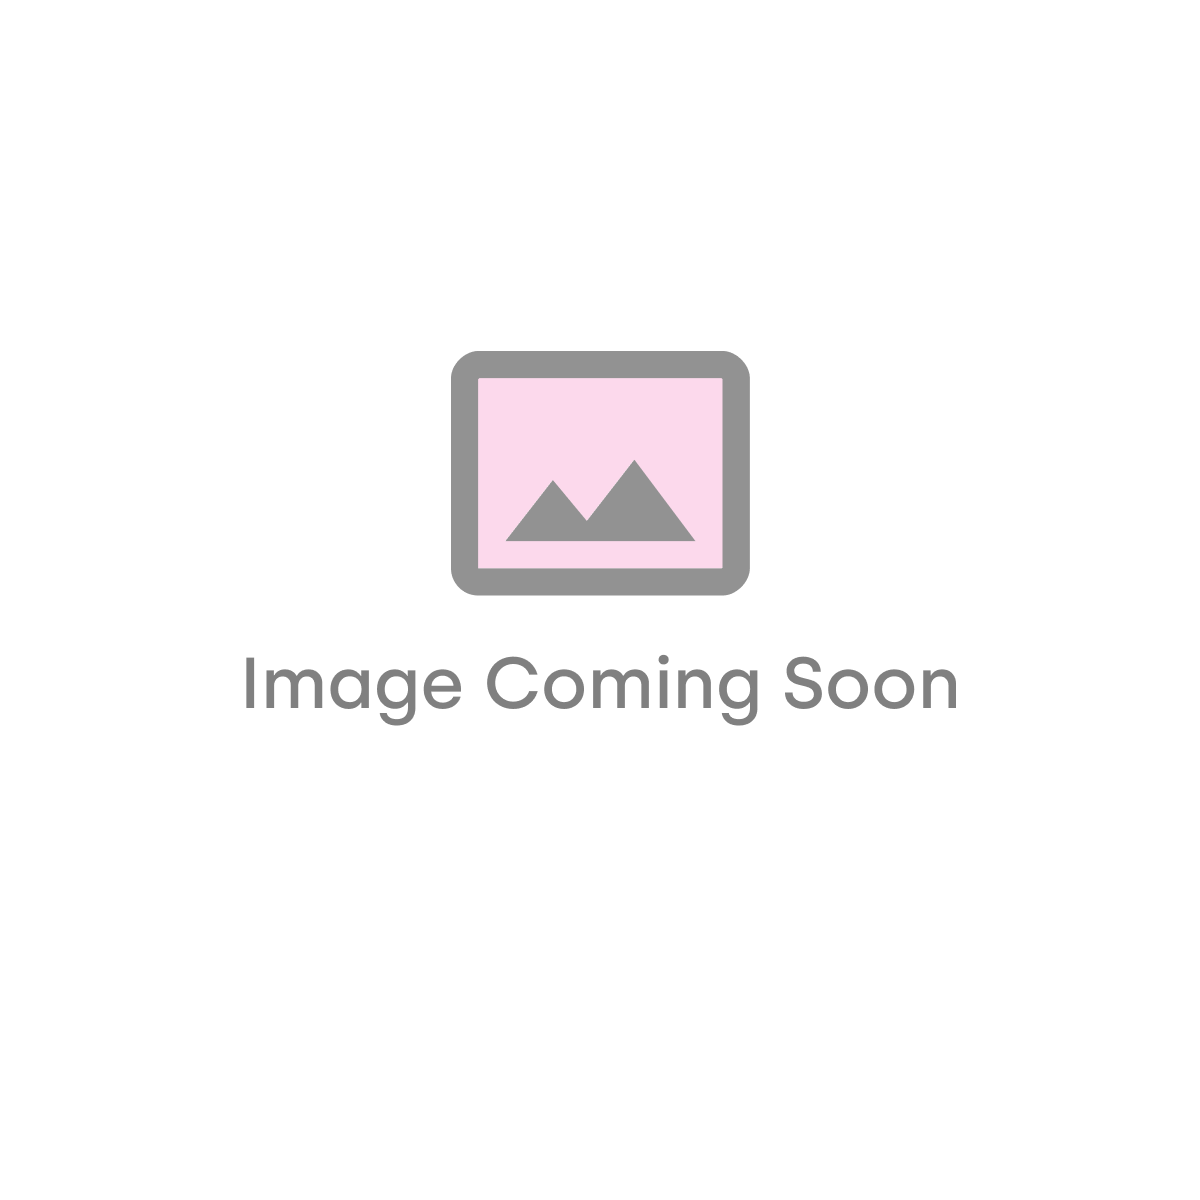 Vitra S50 Comfort Height Open Back Toilet with Soft Close Seat  (14749)